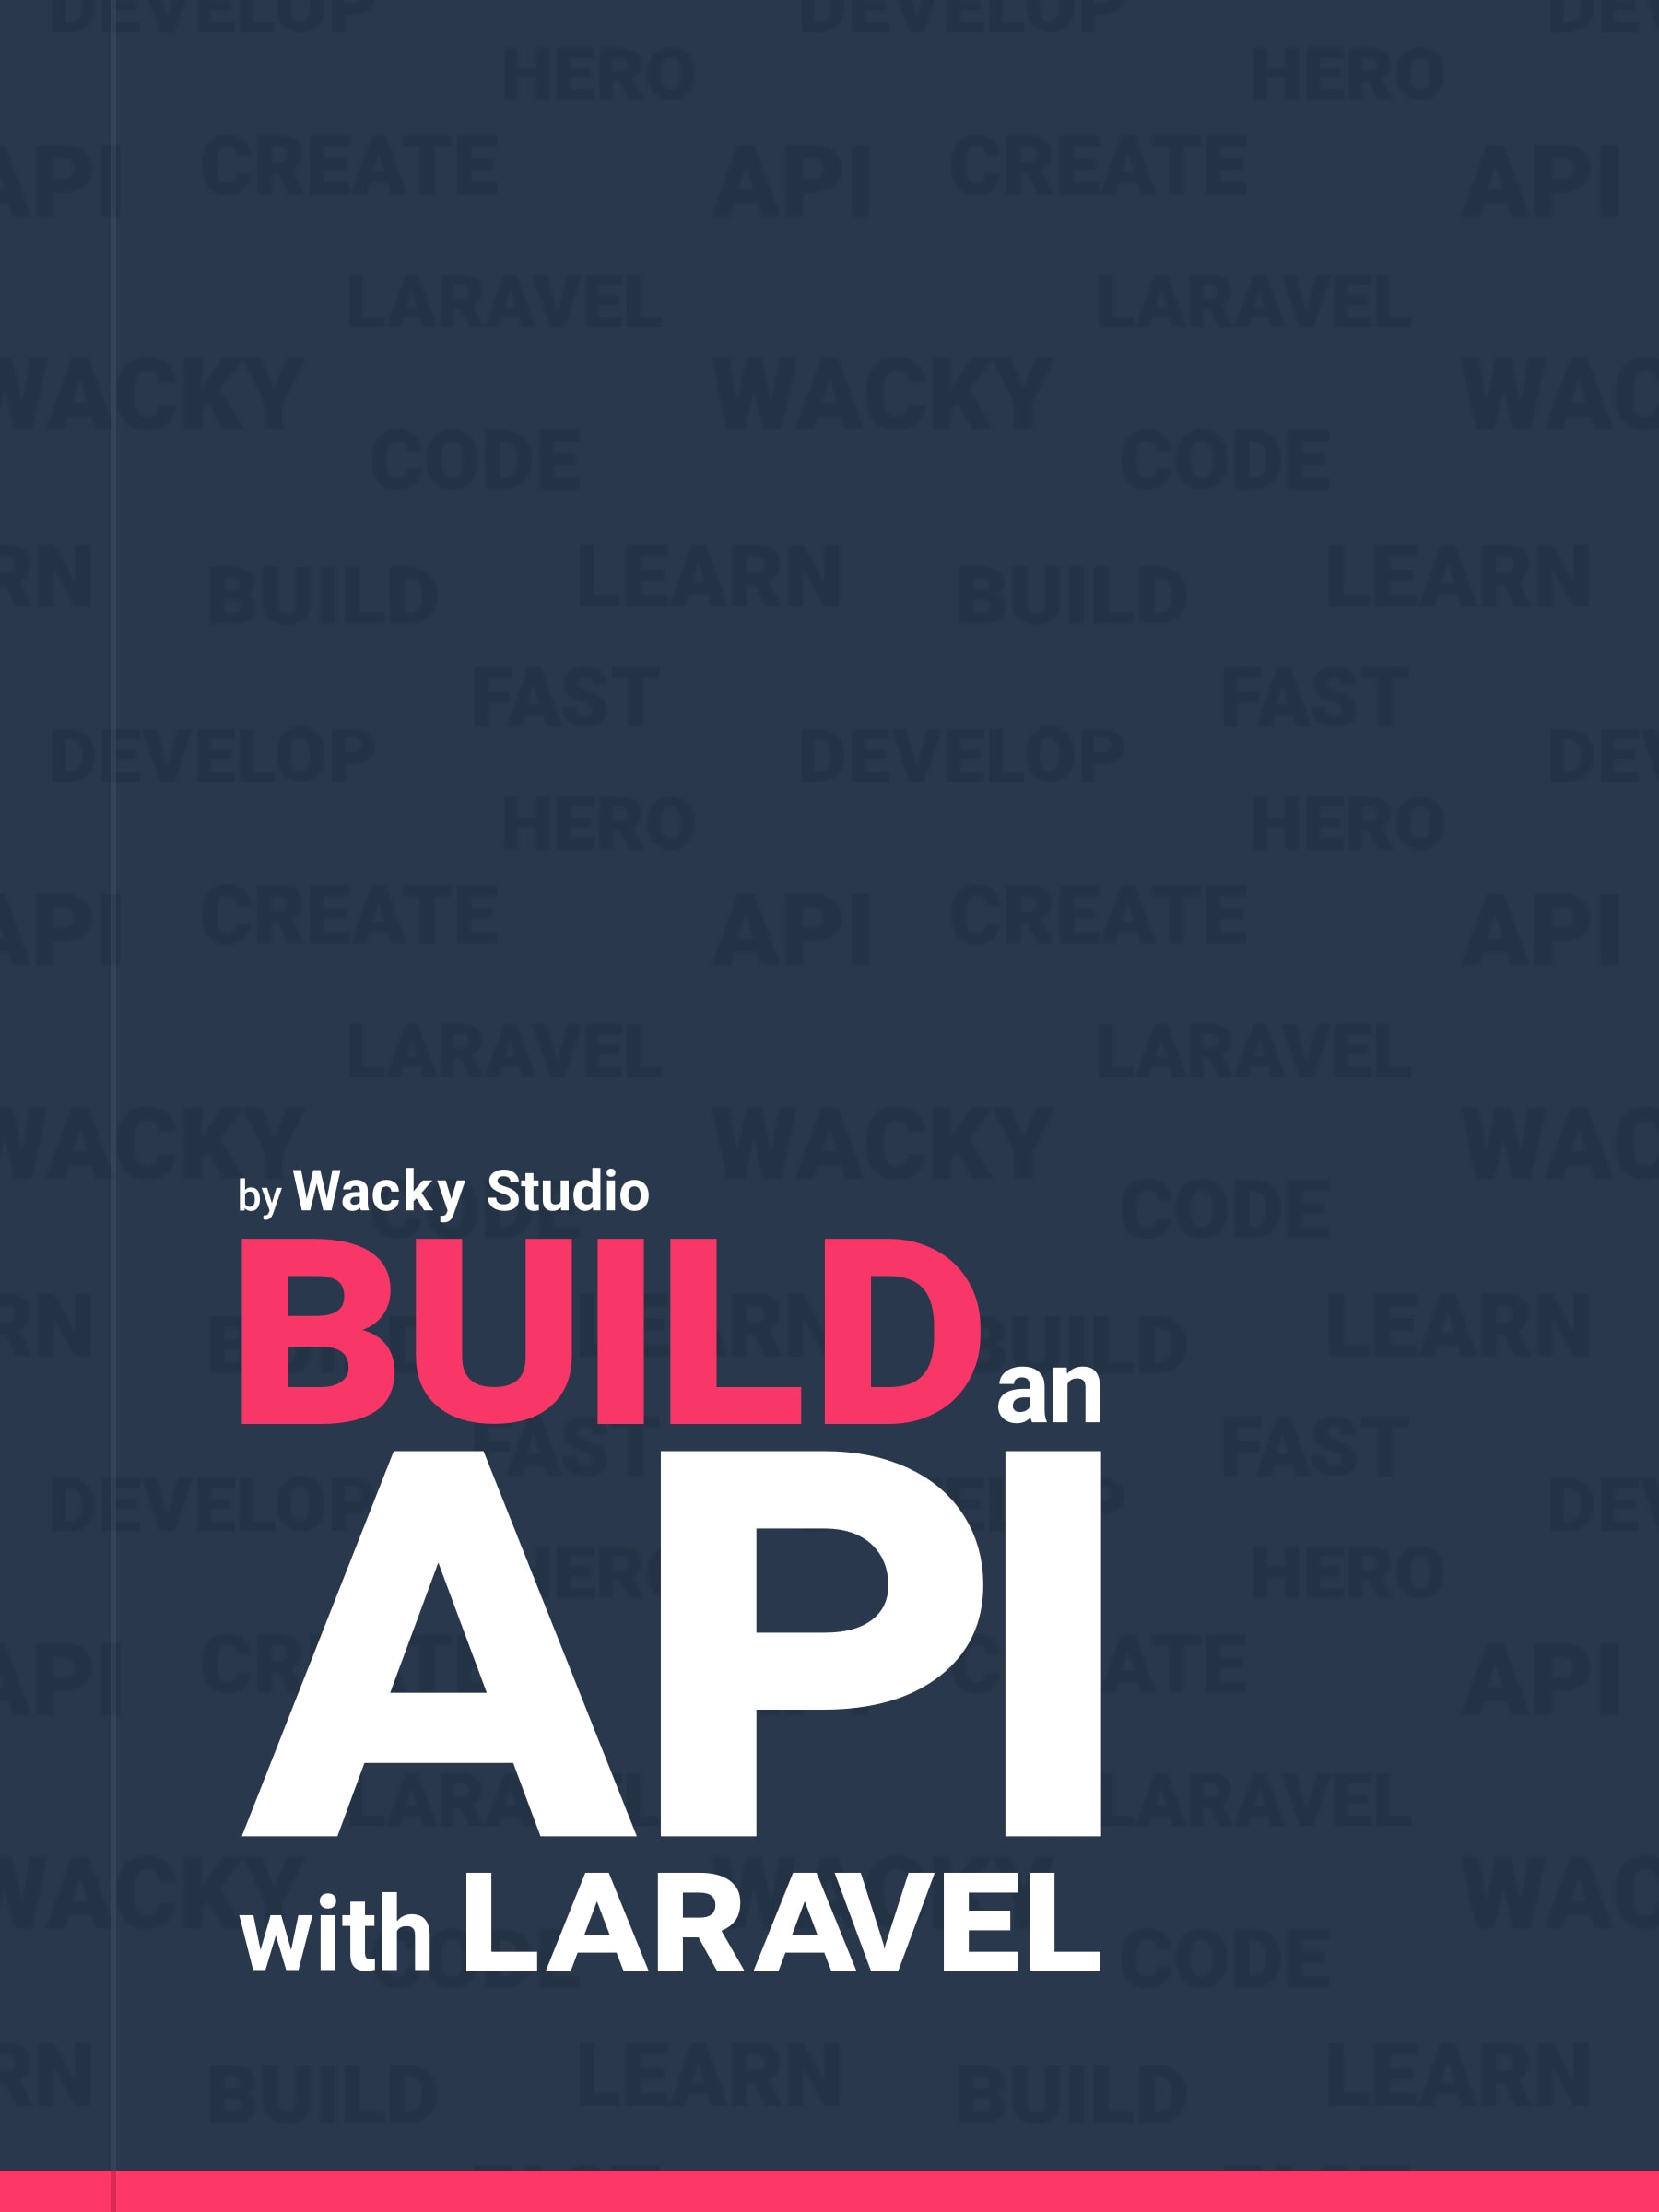 Build an API with Laravel - Book cover